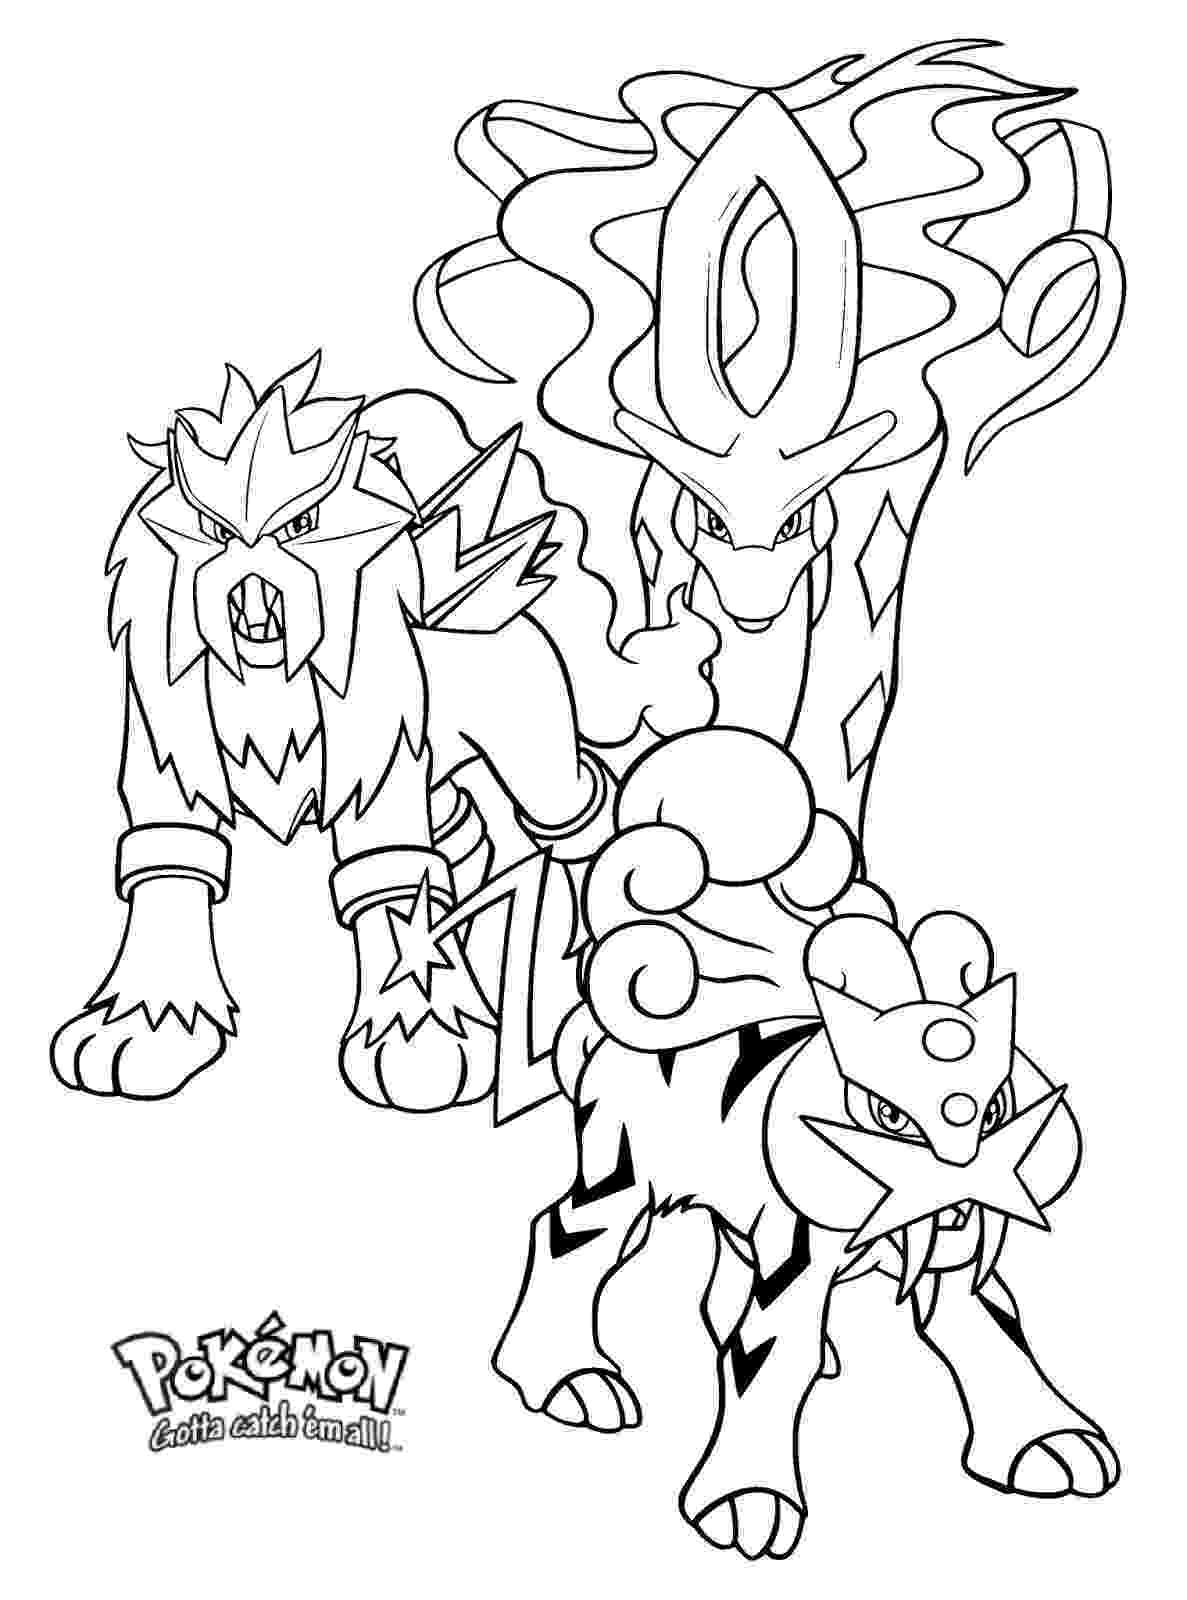 legendary pokemon coloring pages free legendary pokemon coloring pages for kids coloring legendary pokemon pages